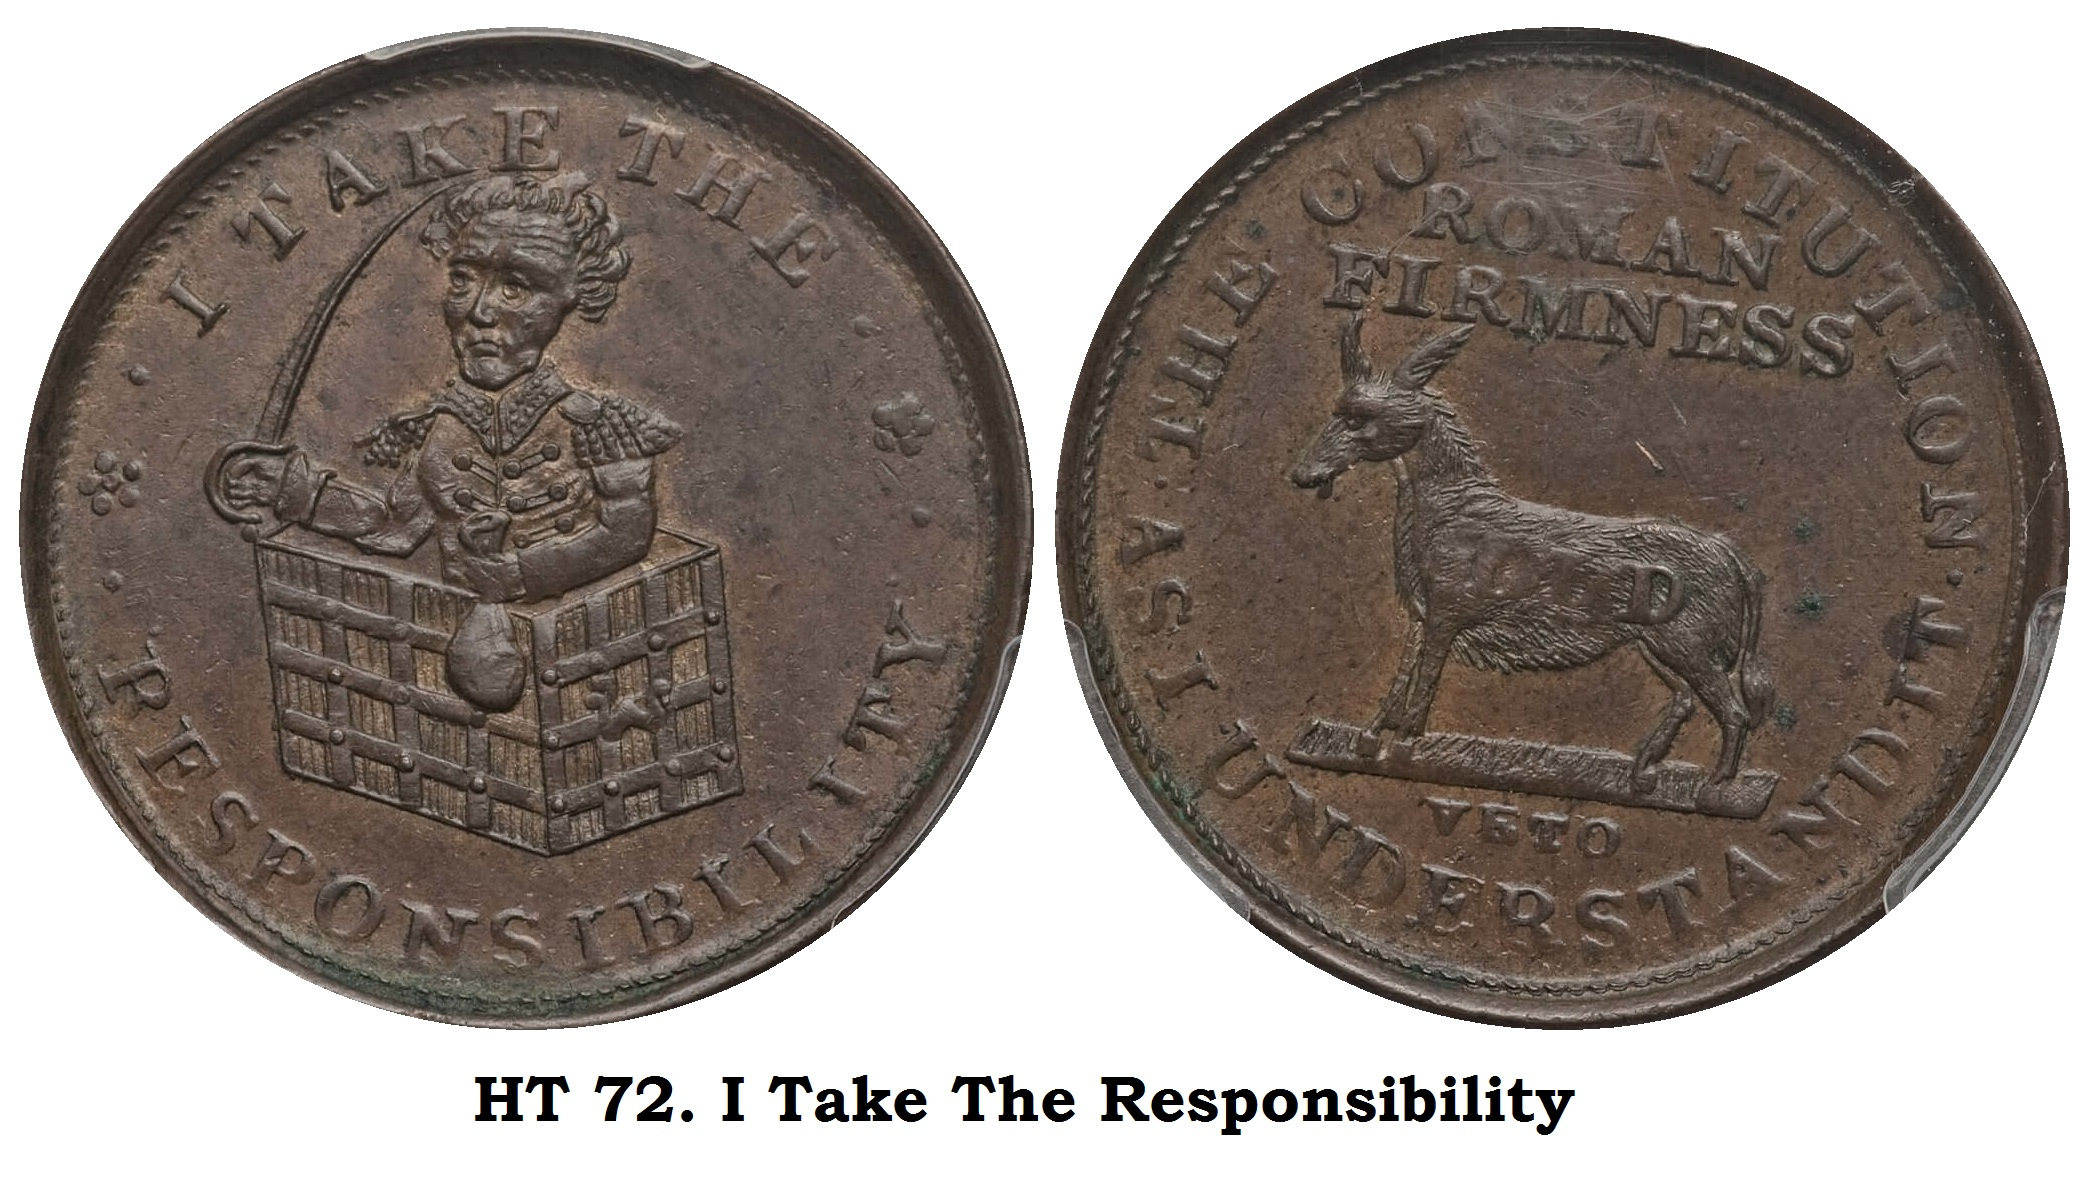 HT-72. I TAKE THE RESPONSIBILITY